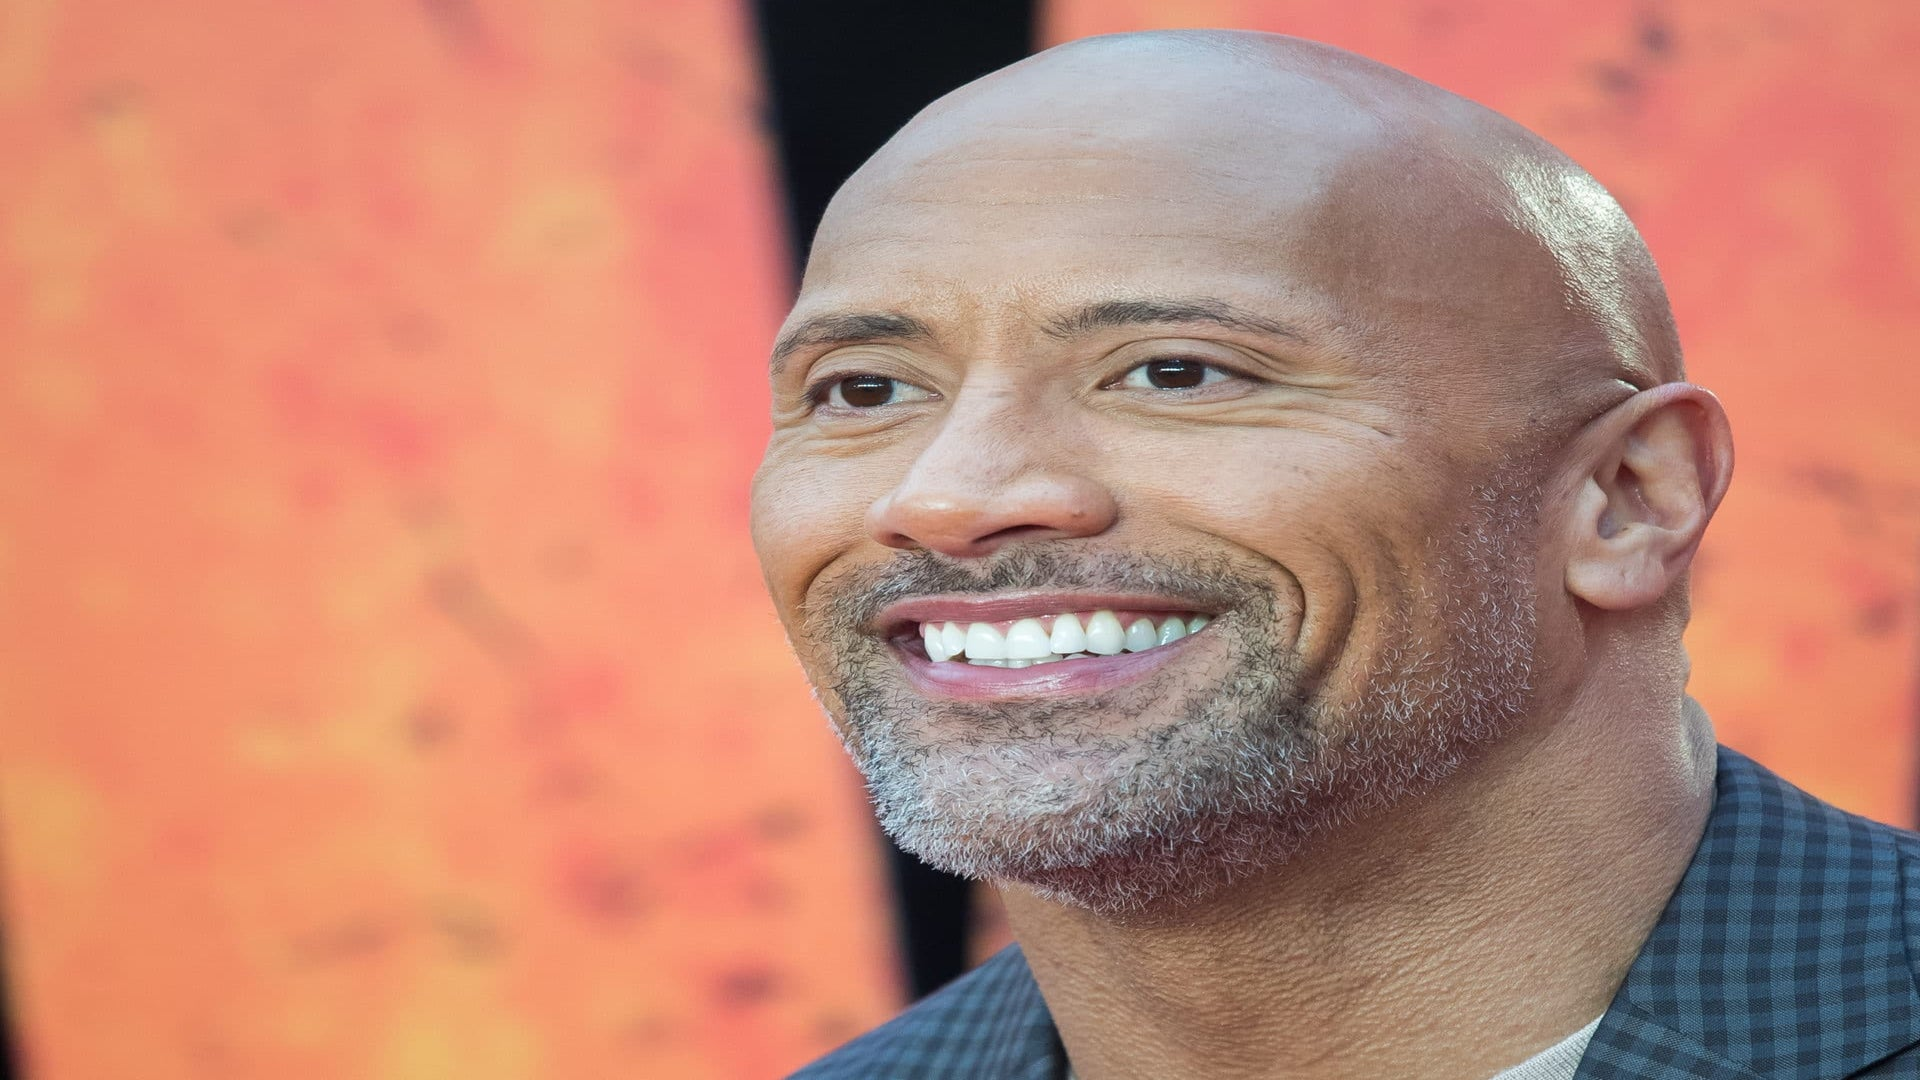 The Rock Says He Was The Academy's First Choice To Host The Oscars